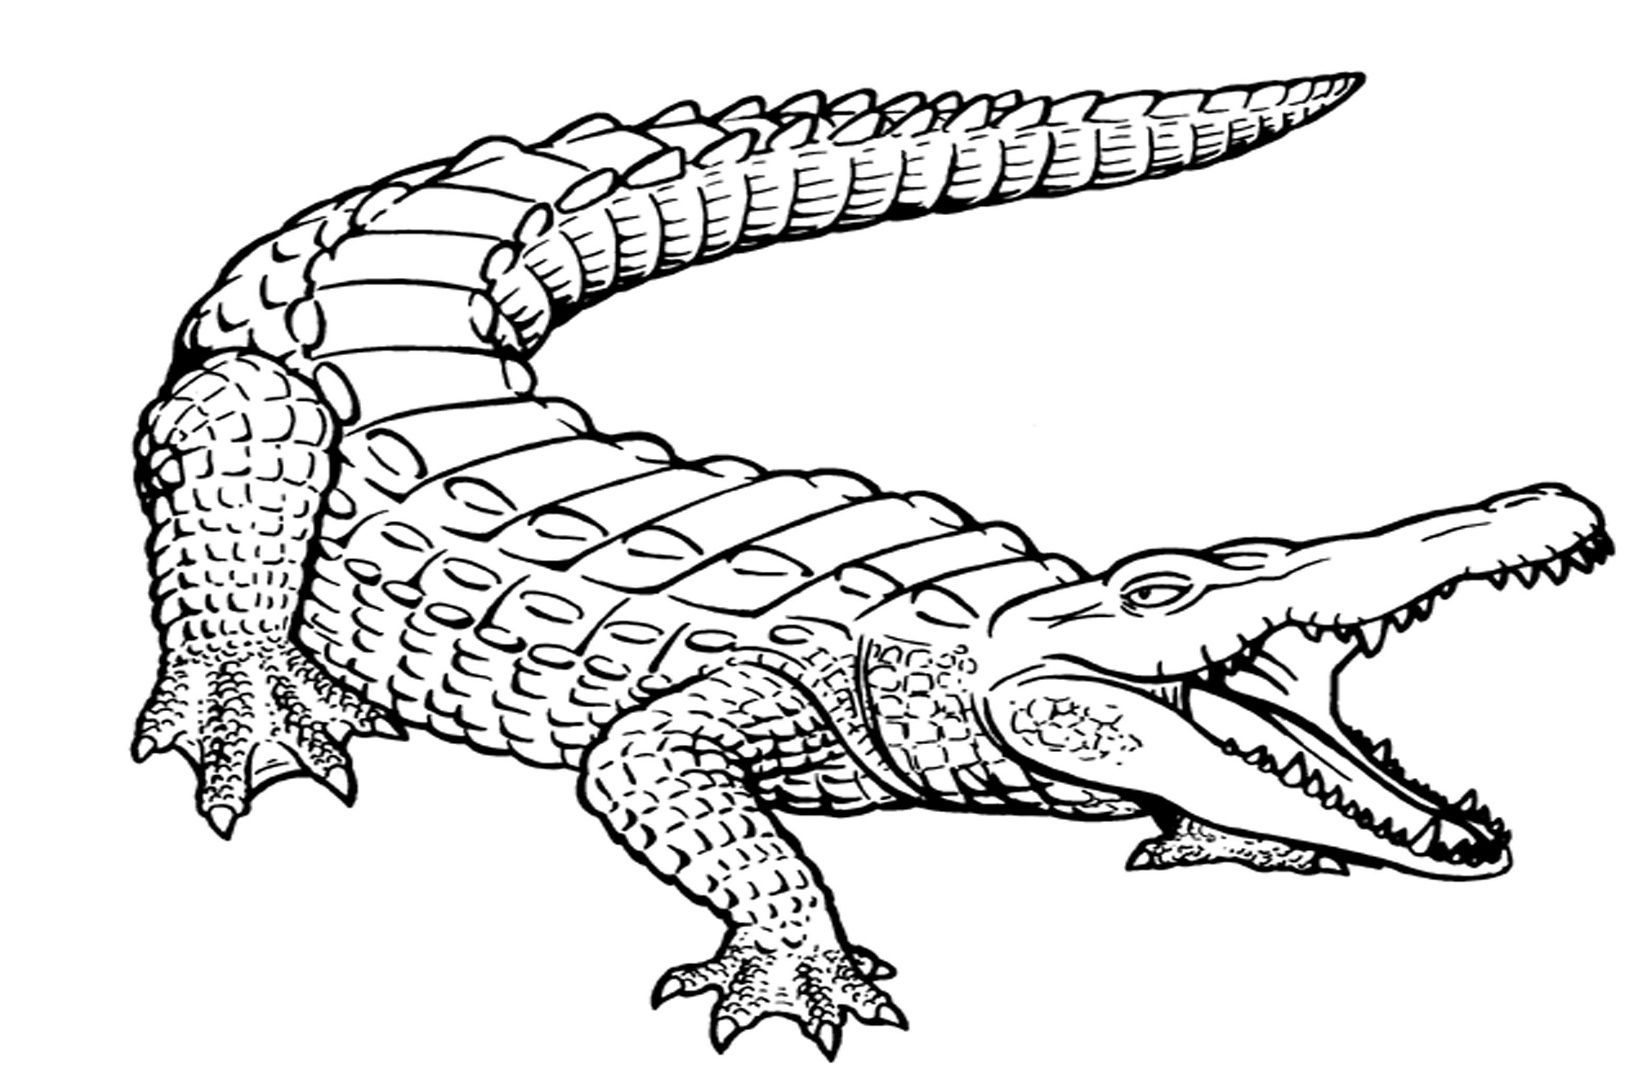 picture of a crocodile to colour big crocodile animals coloring pages for kids printable colour of to picture a crocodile